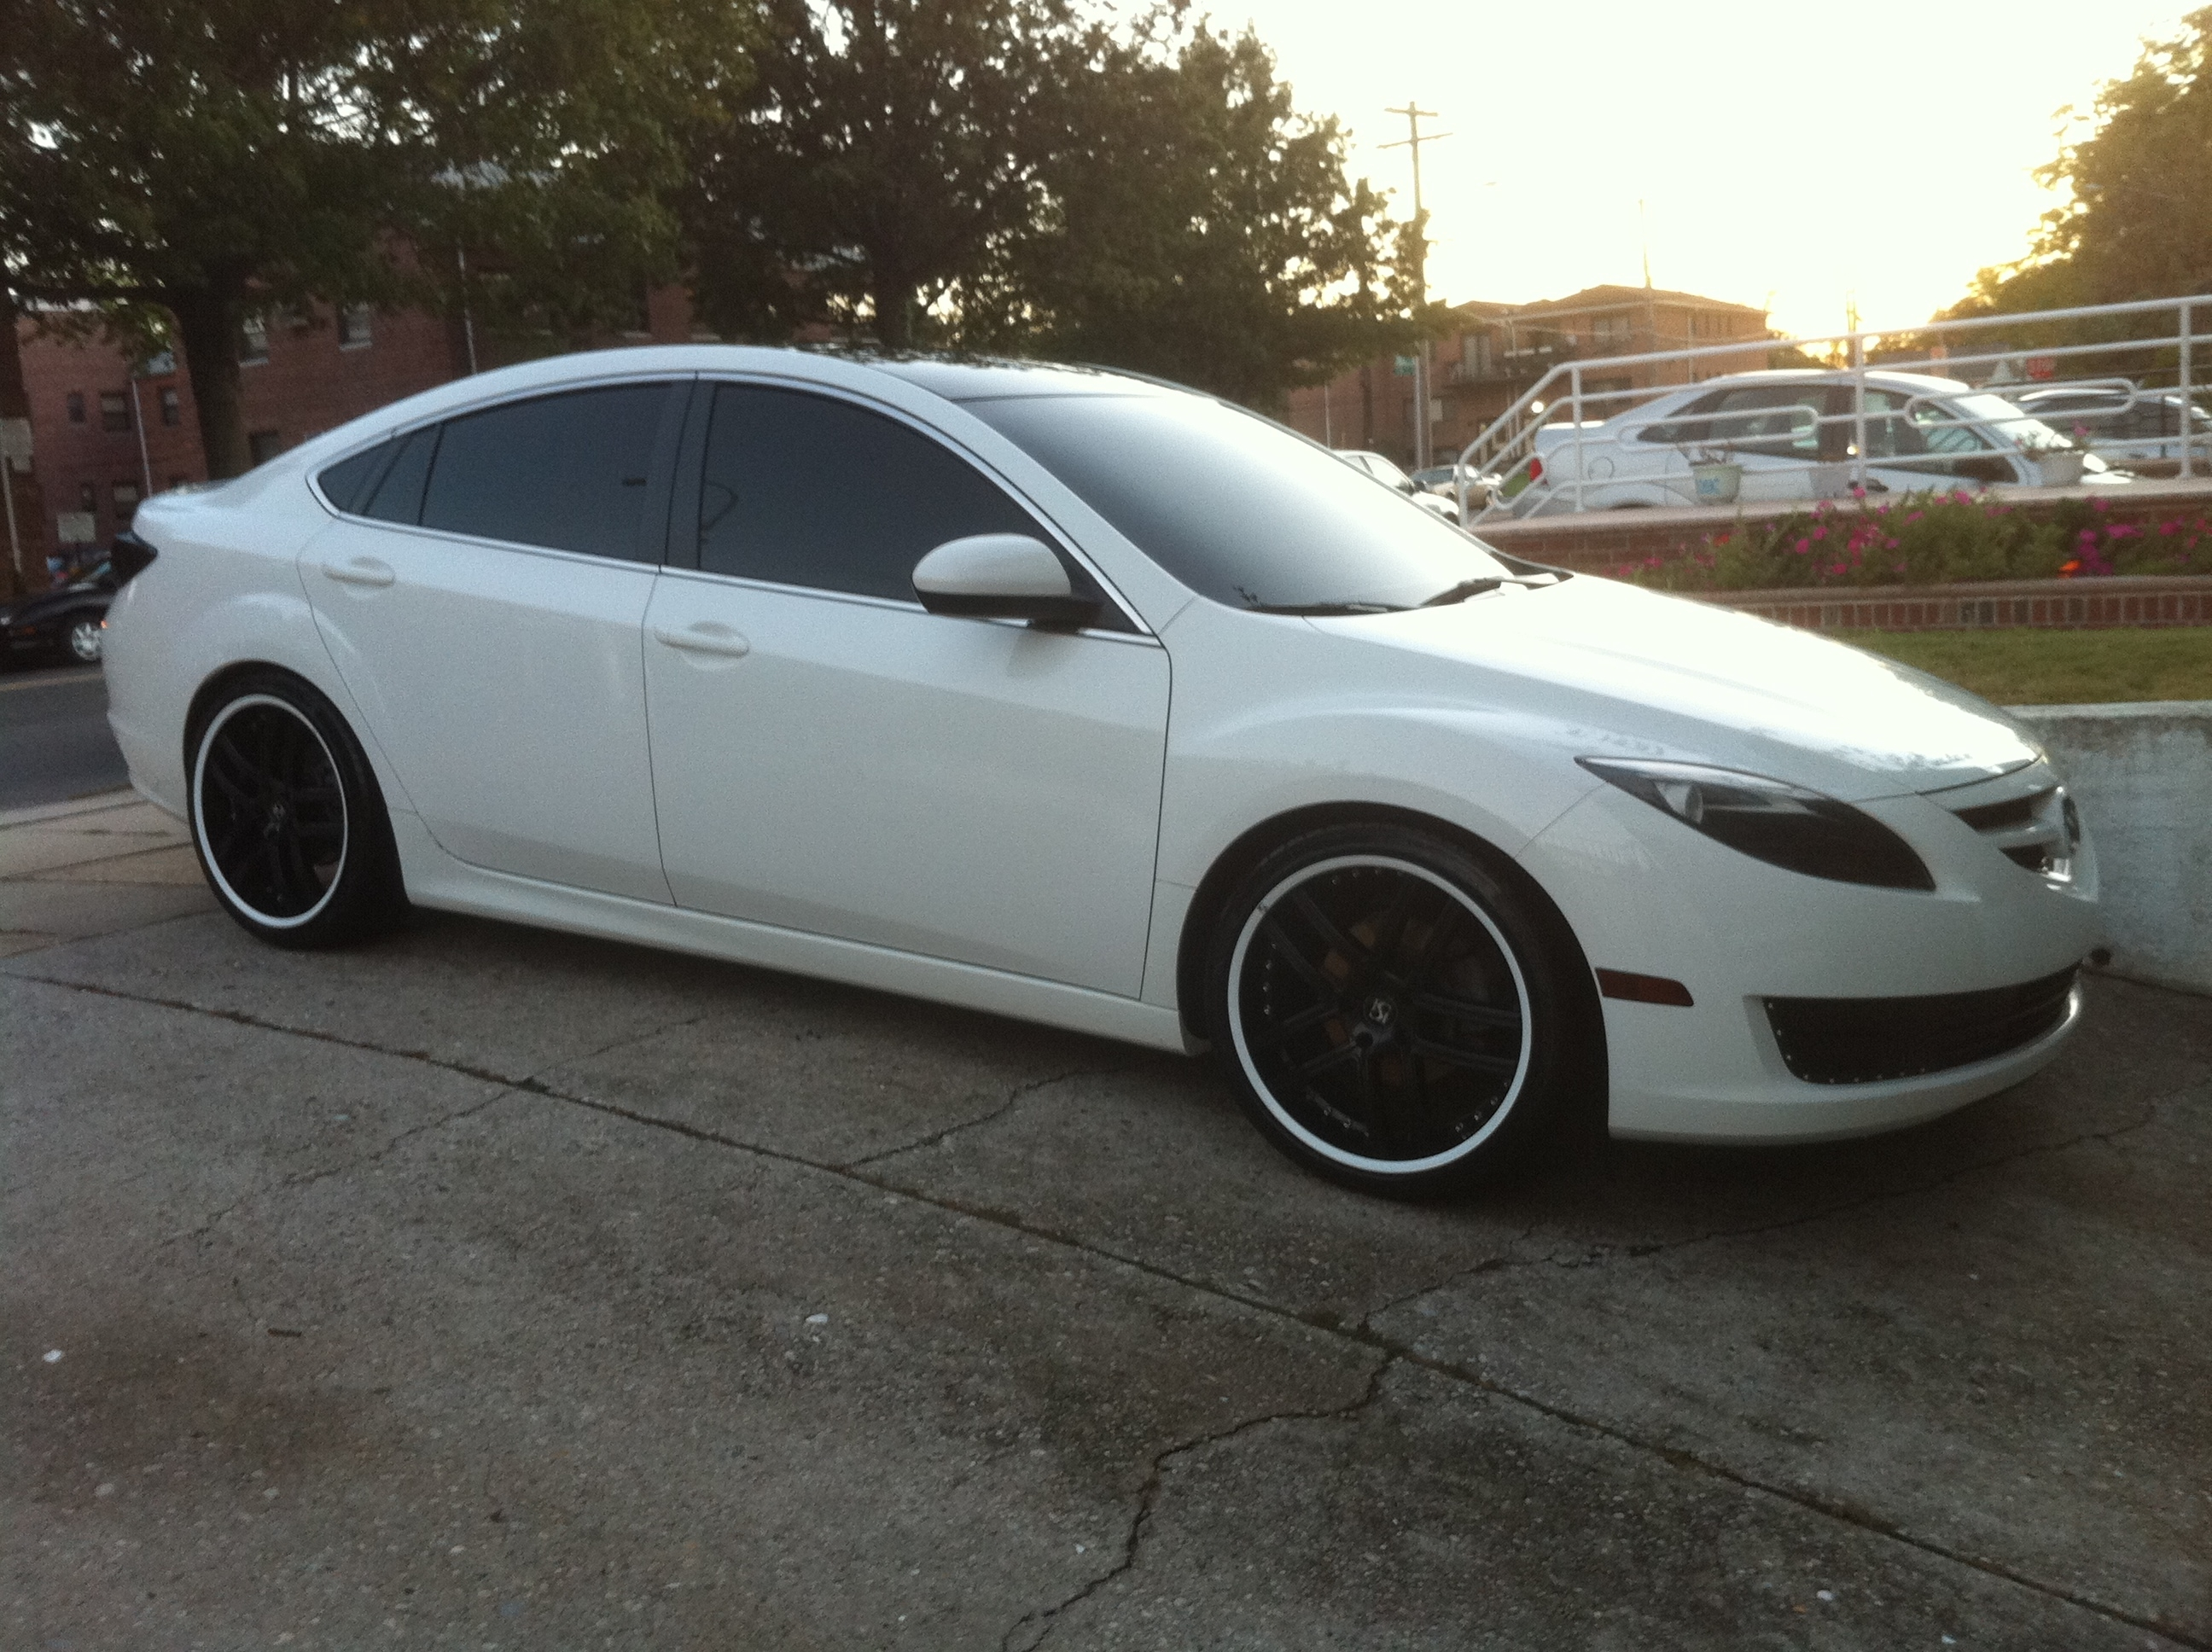 sports mid turbocharged build int size parchment vehicles this gtr mazda cars sedan car thisbuild usa